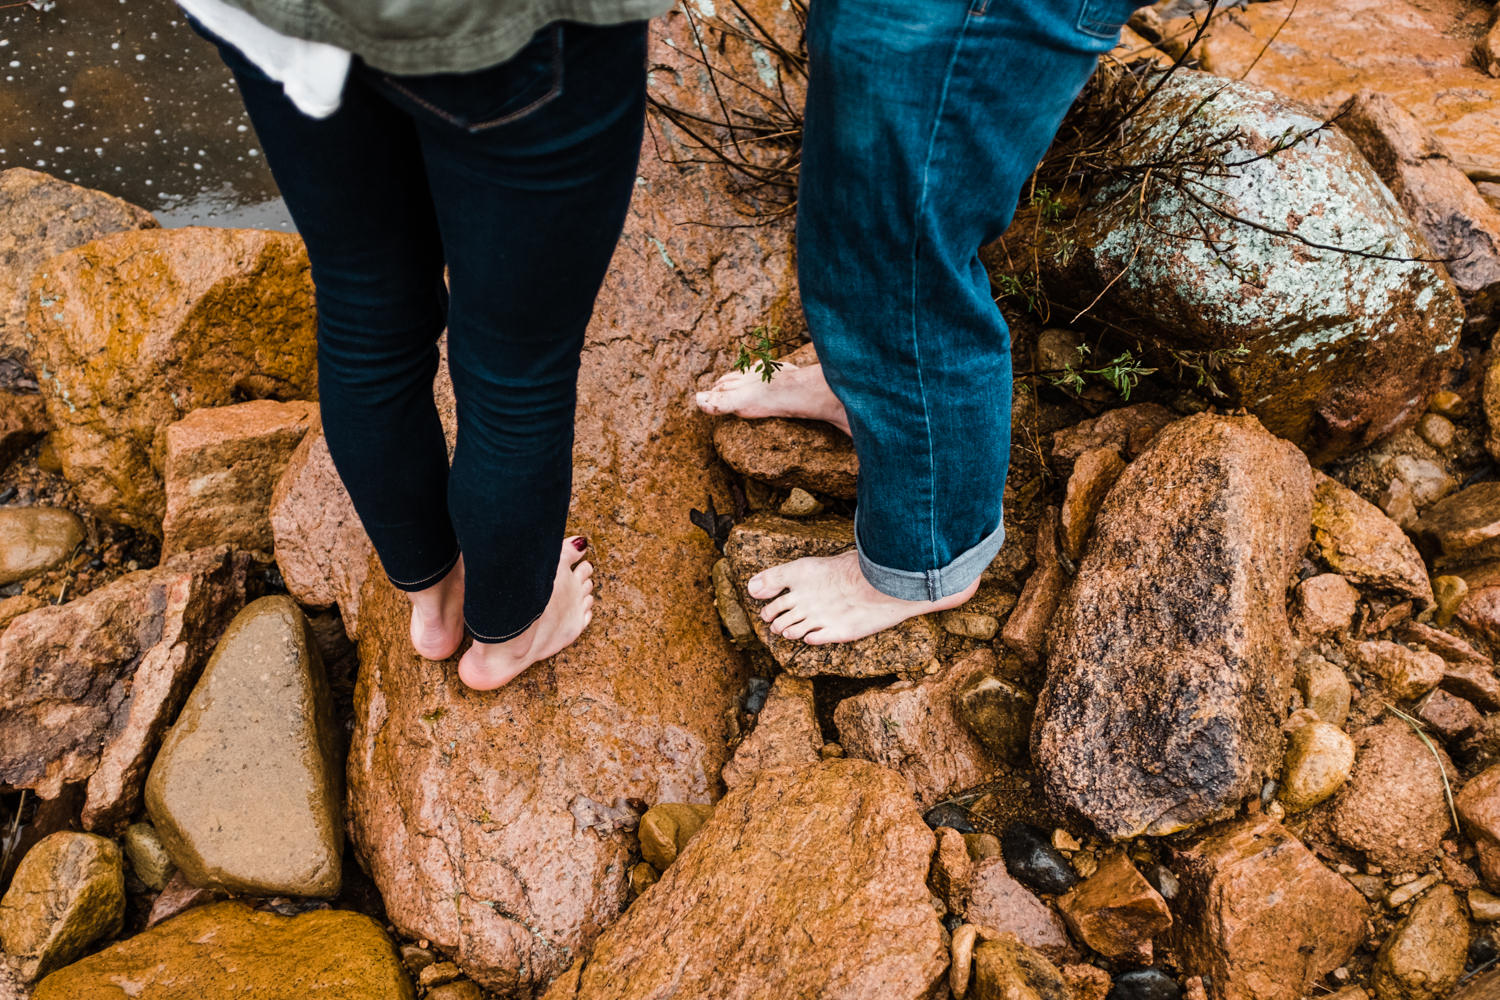 Oklahoma Engagement-Neal Dieker-Oklahoma Wedding Photography-Wichita Mountains-Wichita, Kansas Portrait Photographer-141.jpg